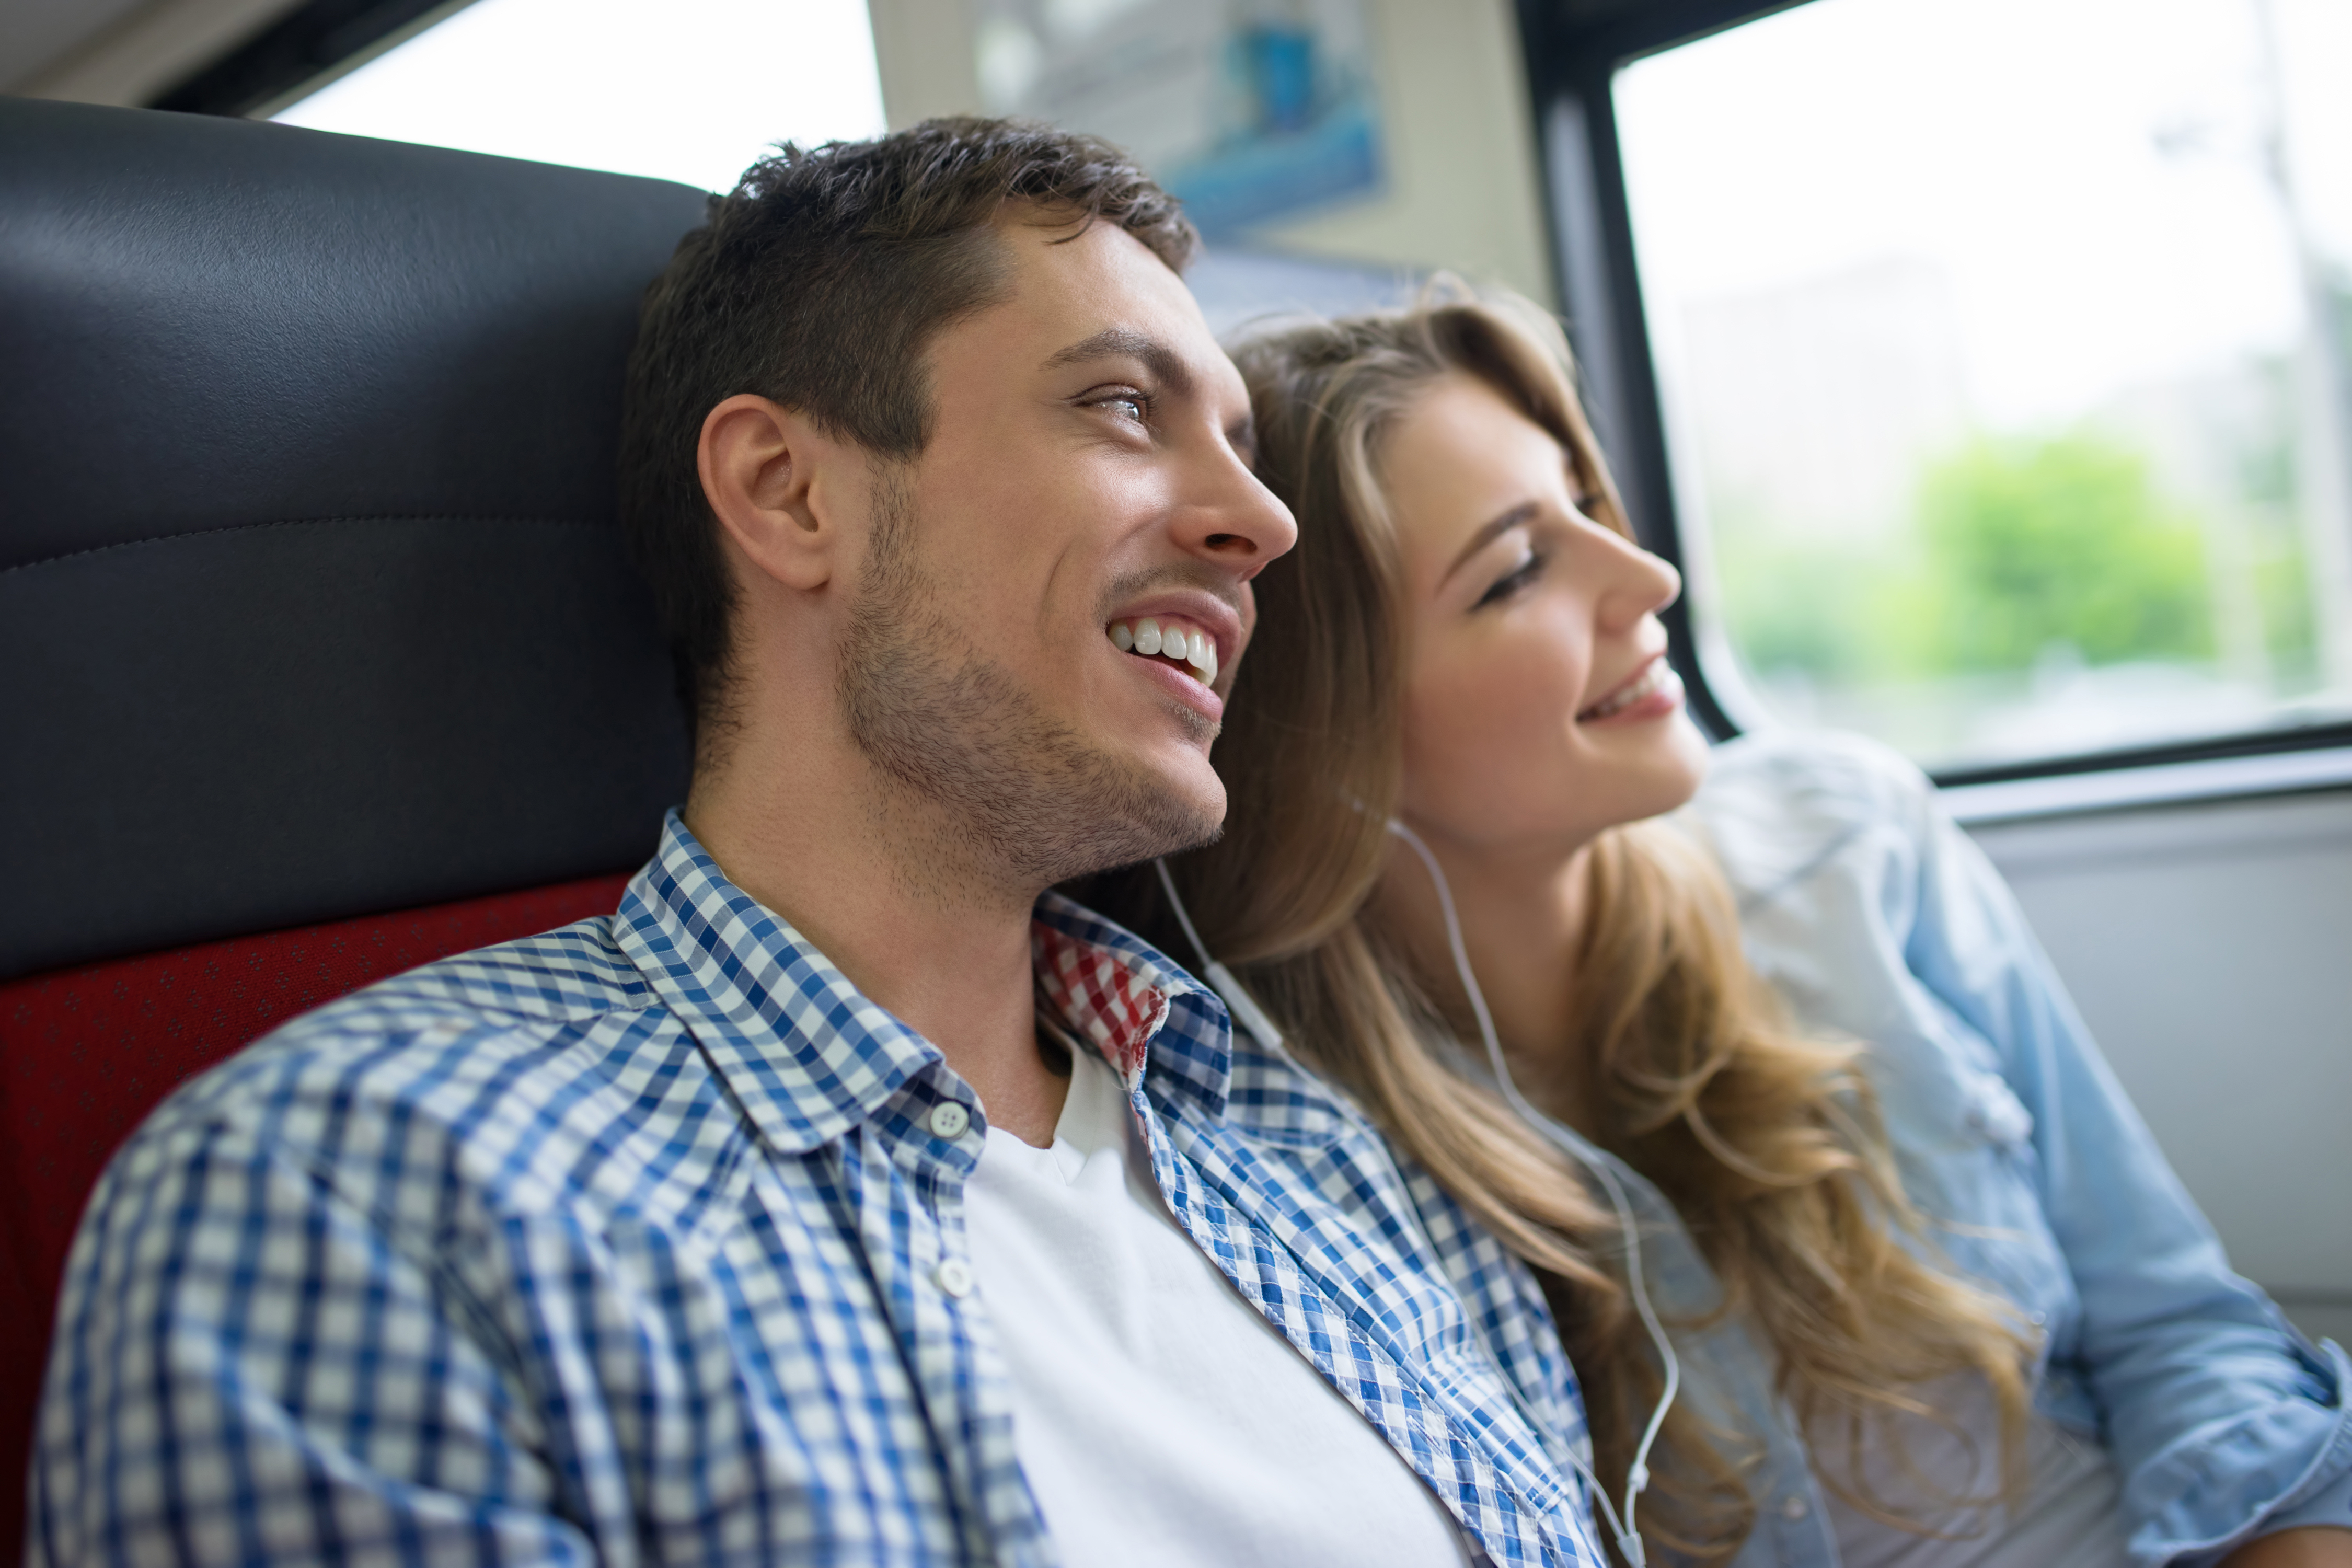 Young couple on a train smiling